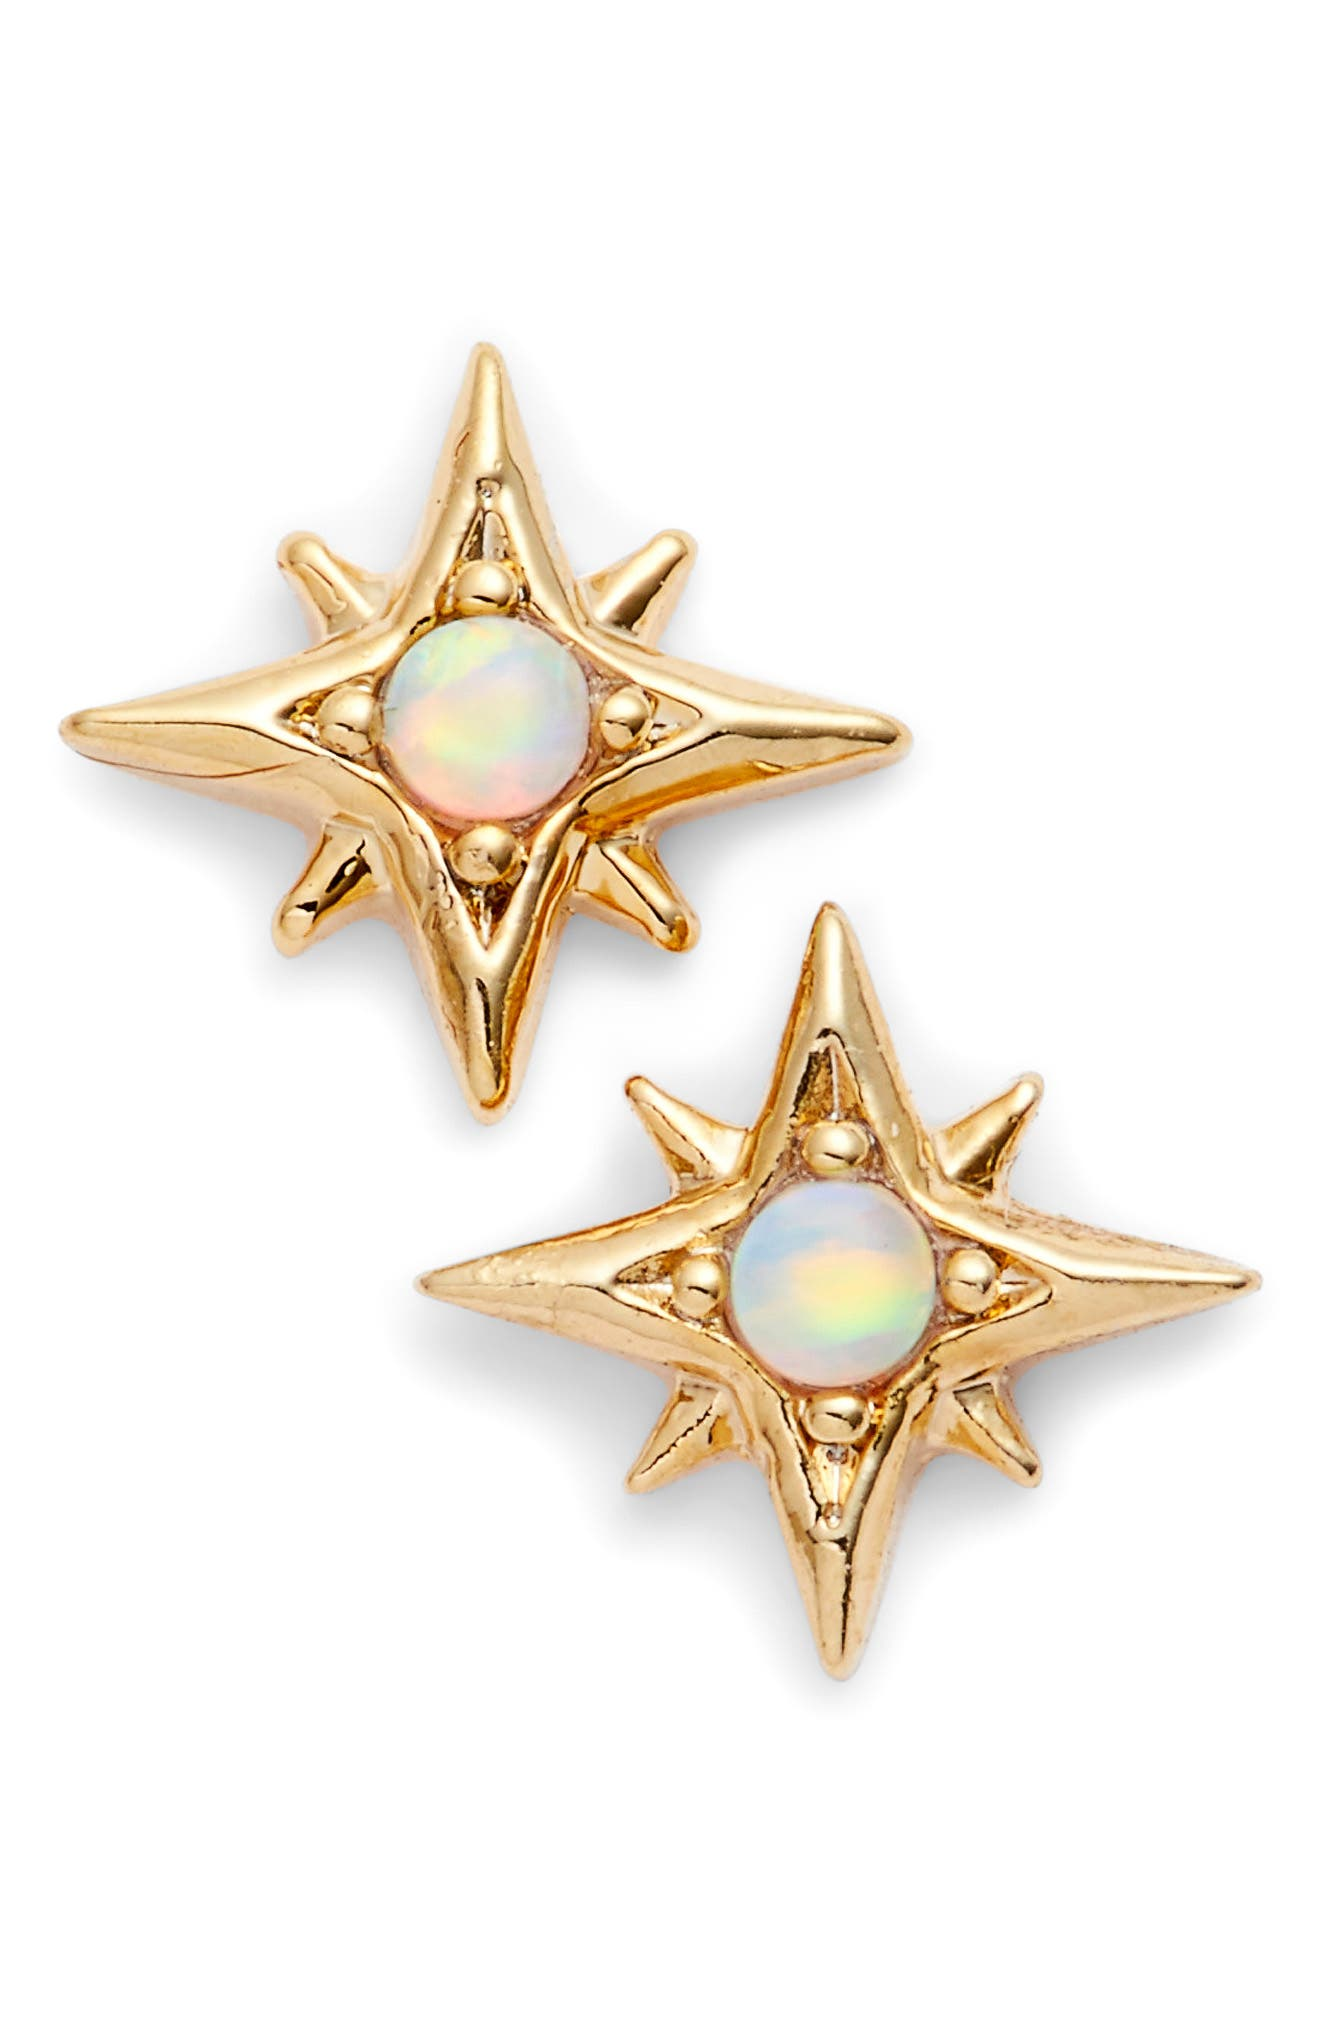 Sydee Cubic Zirconia Stud Earrings,                             Main thumbnail 1, color,                             Opal/ Gold